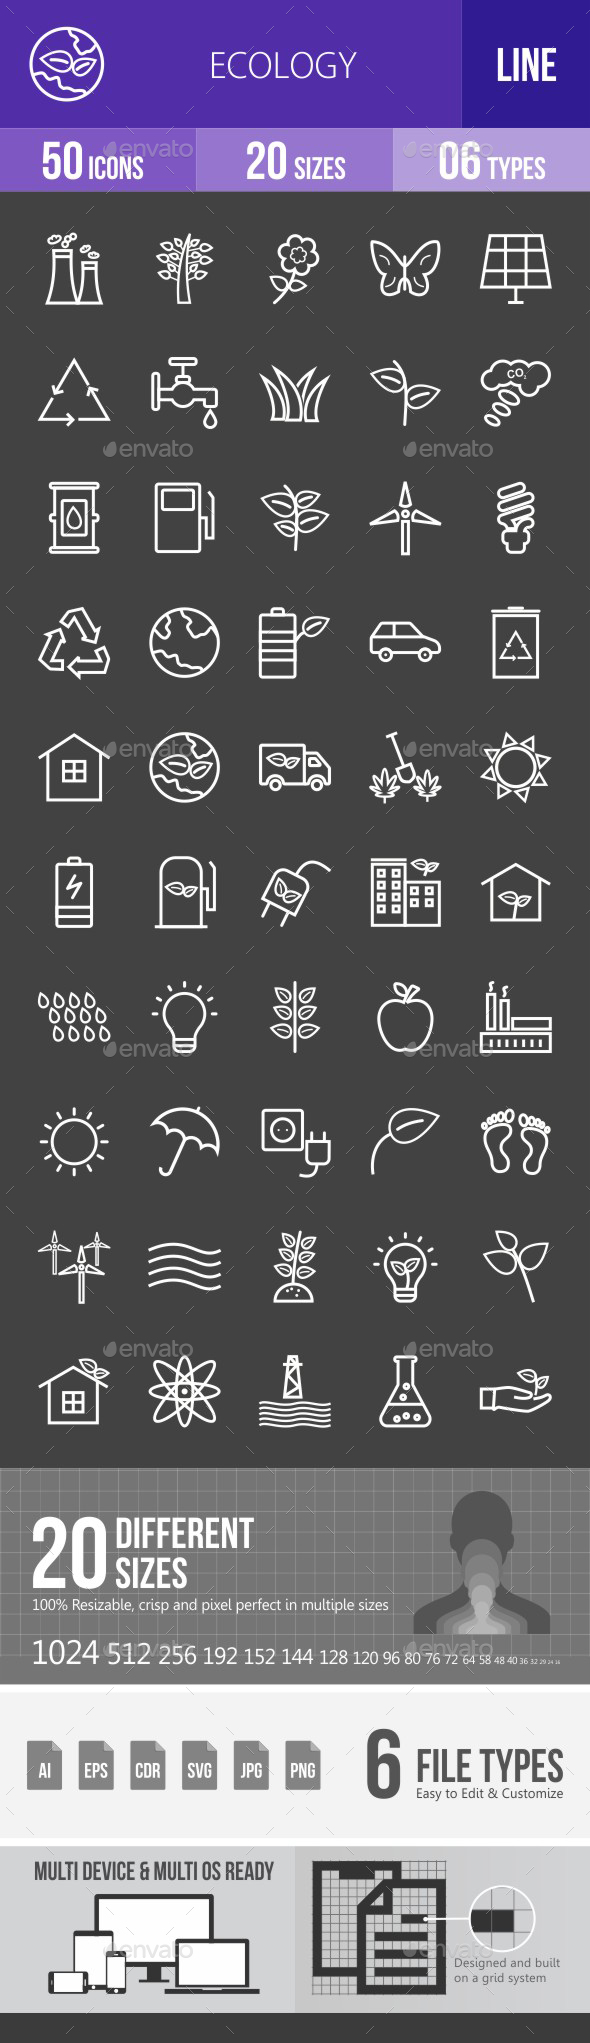 Ecology Line Inverted Icons - Icons